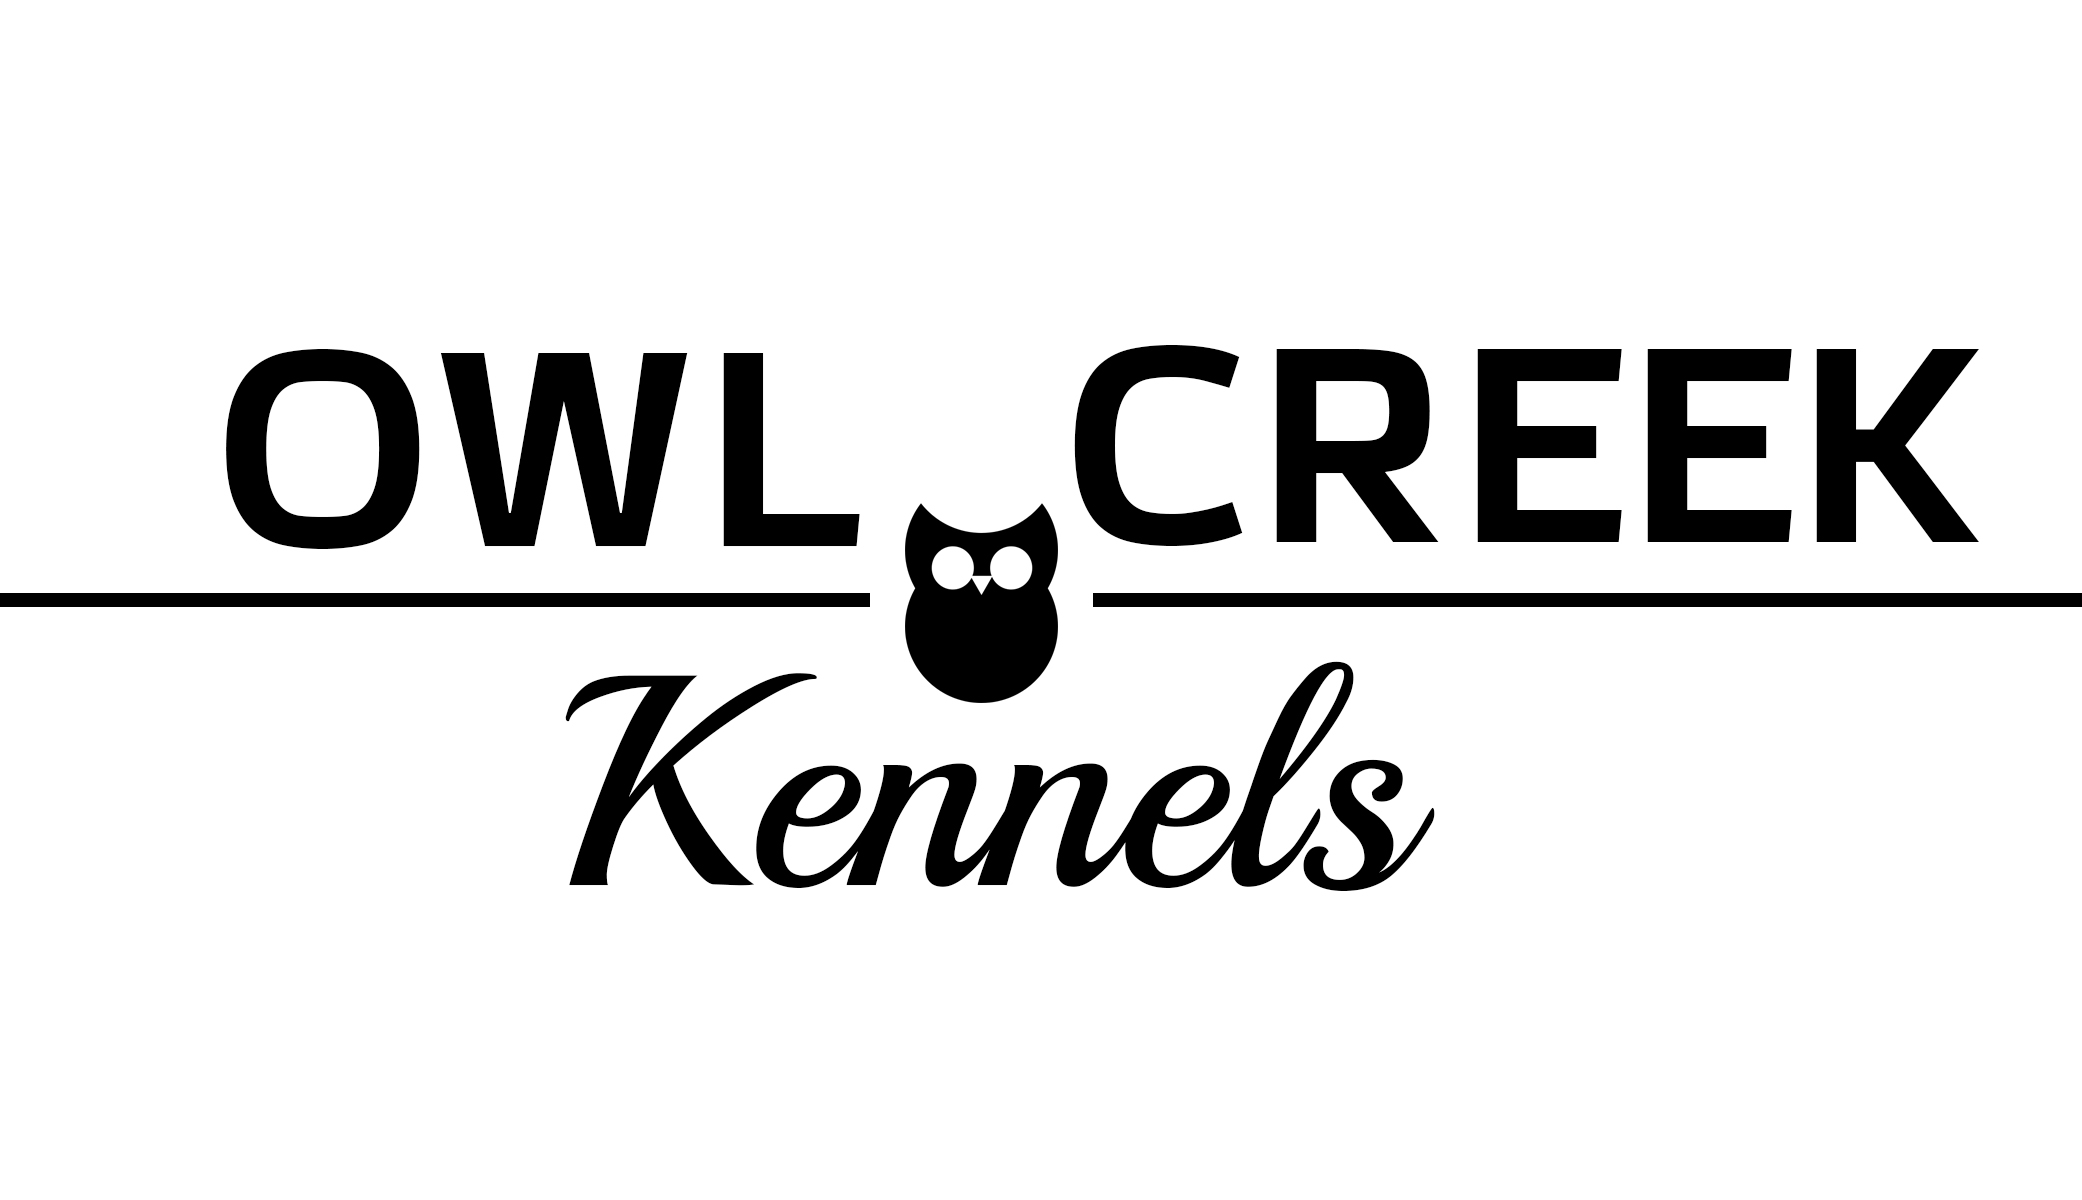 Owl Creek Kennels